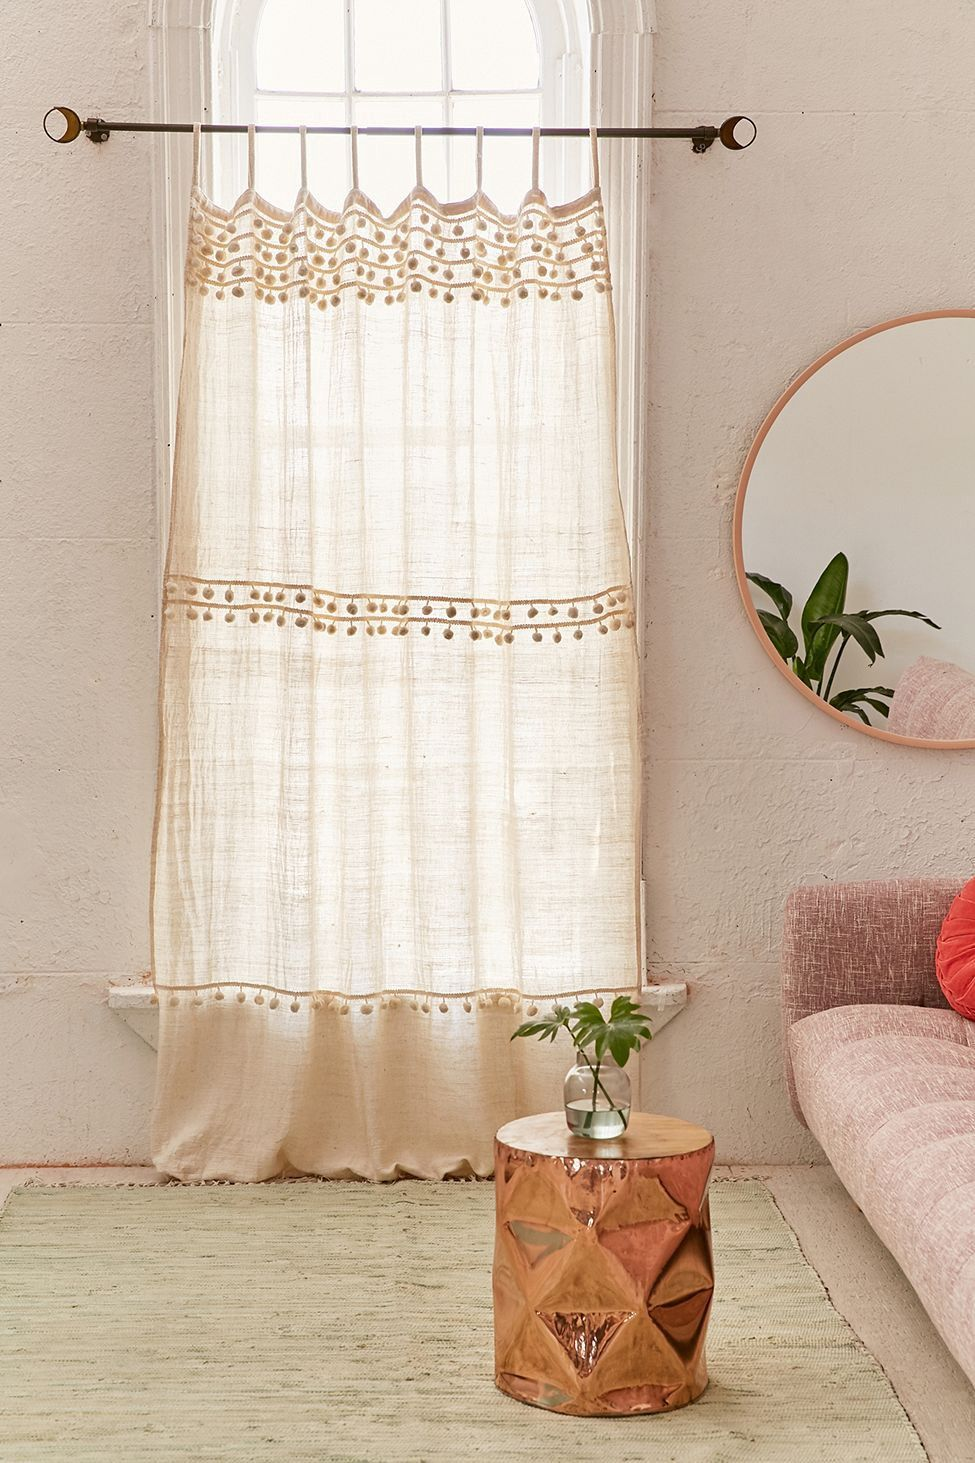 Creative window coverings  averi pompom gauze window curtain by urban outfitters  products